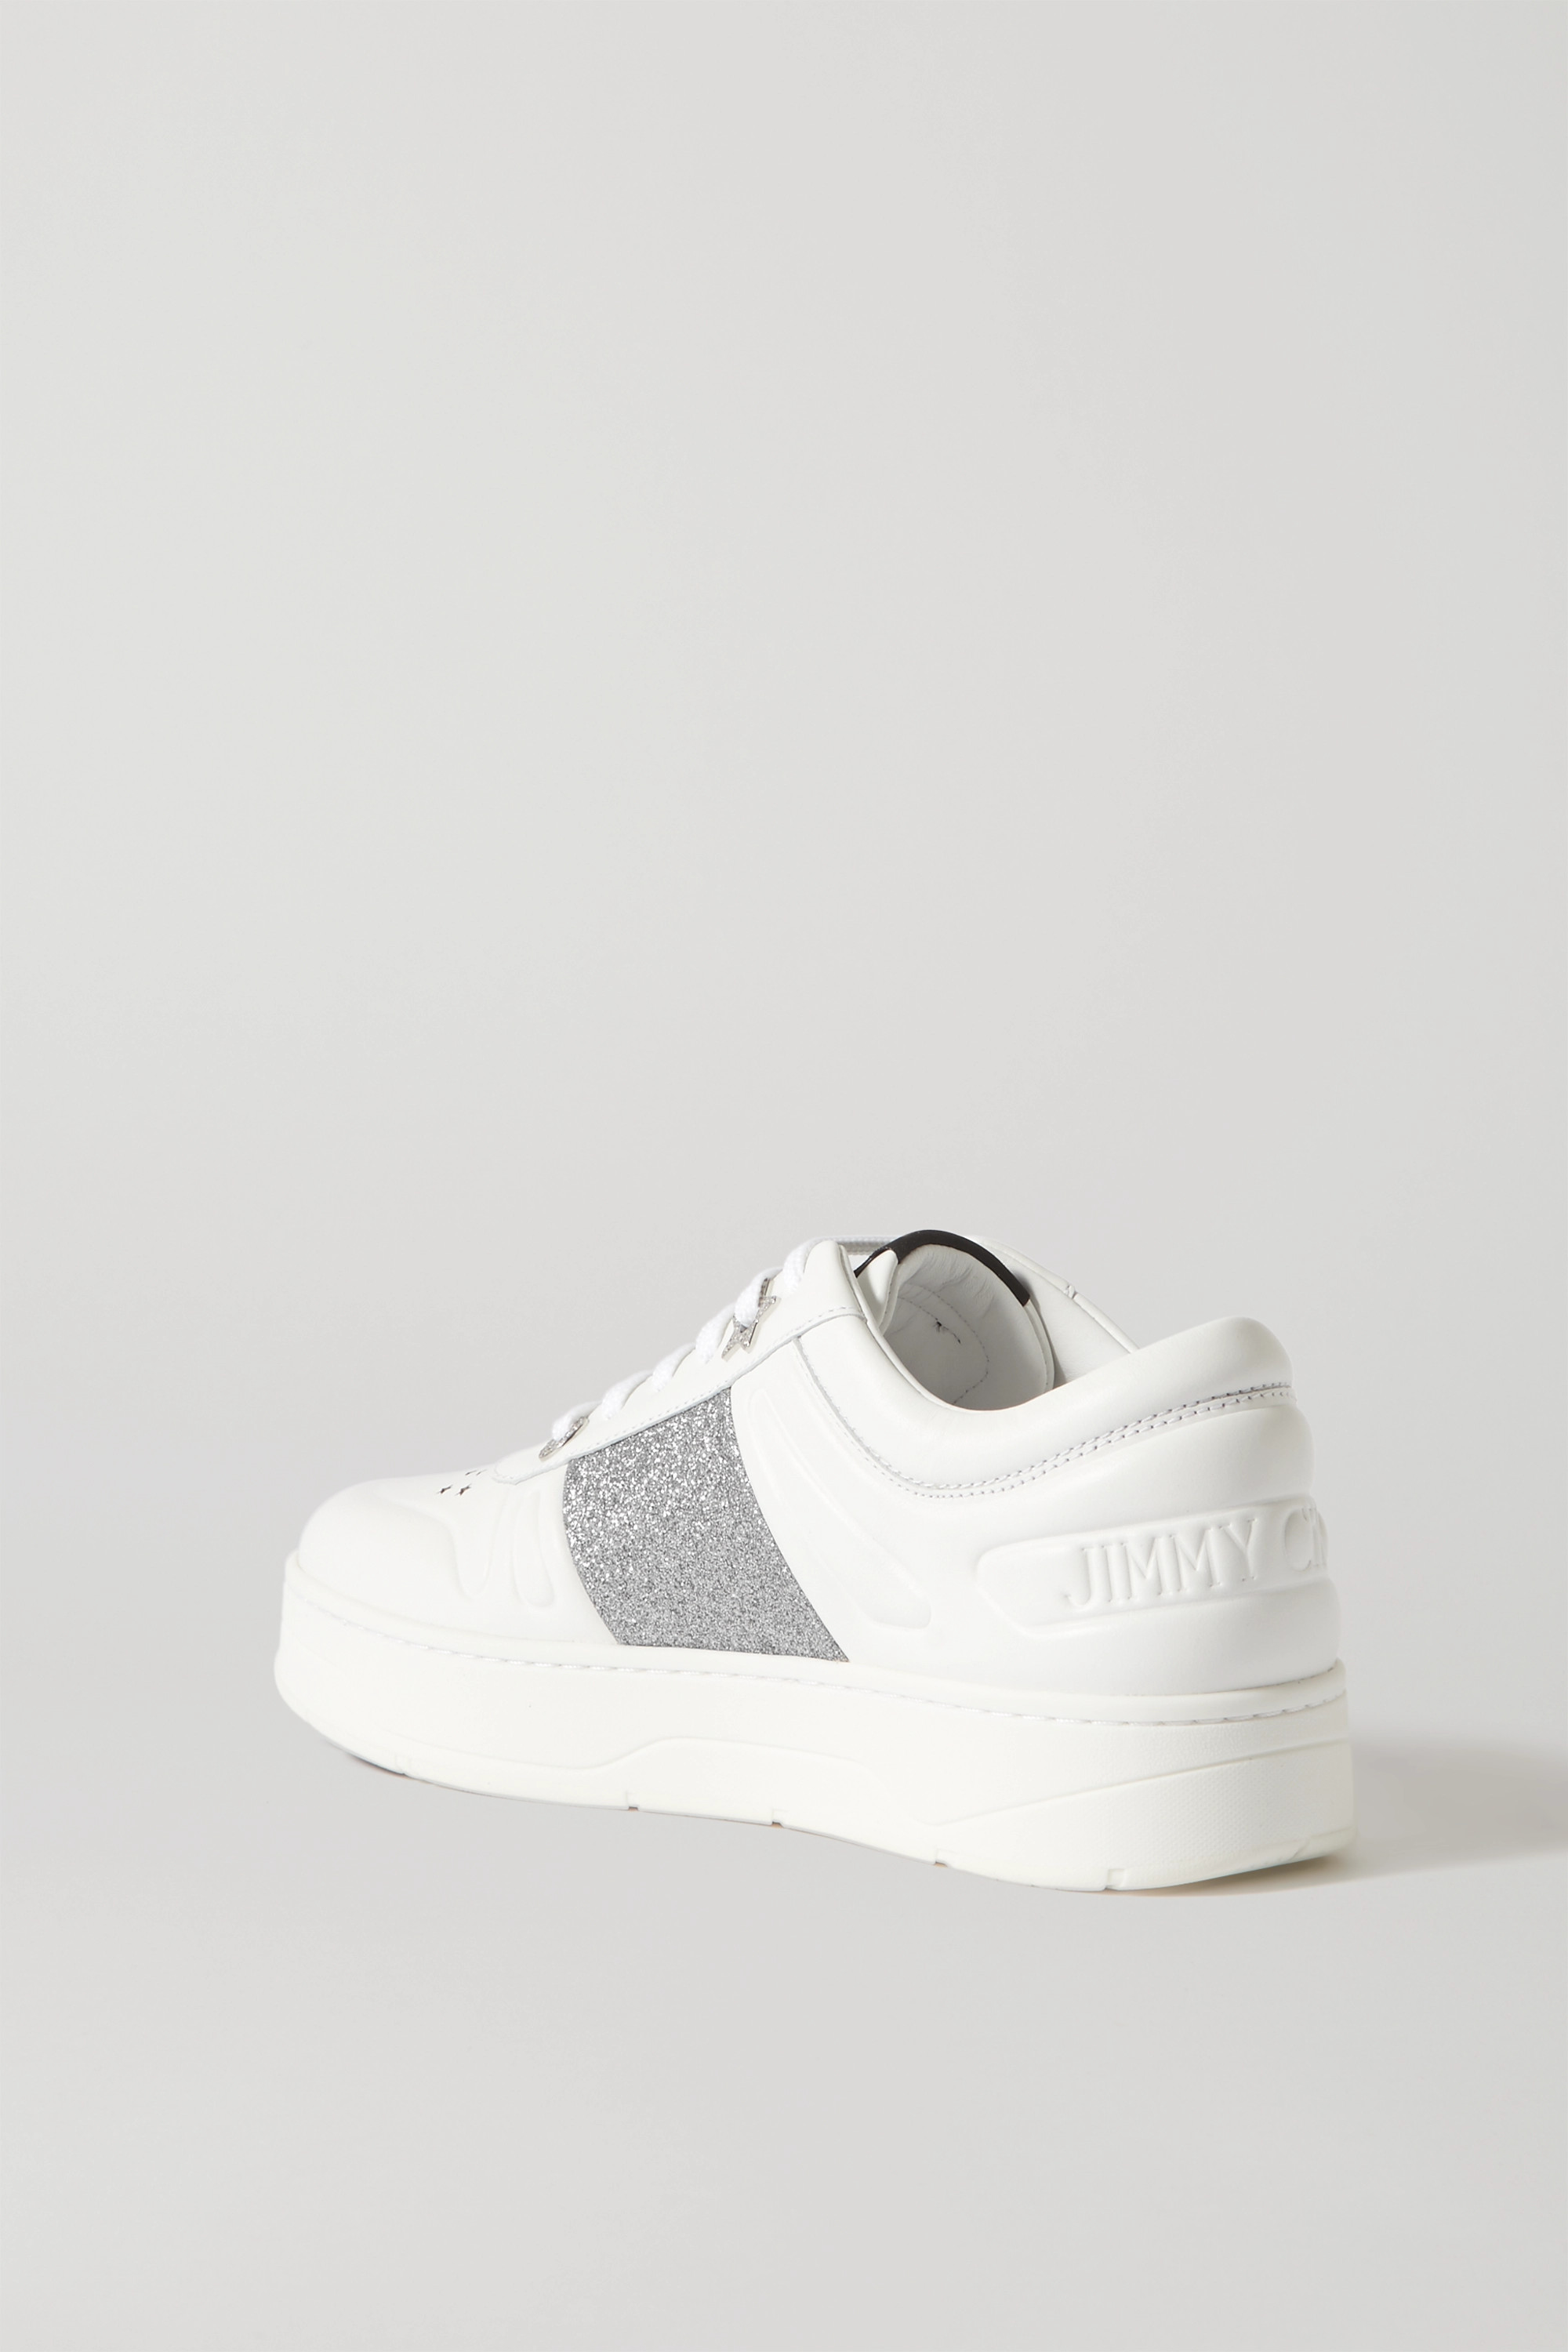 Jimmy Choo Hawaii embellished perforated leather sneakers